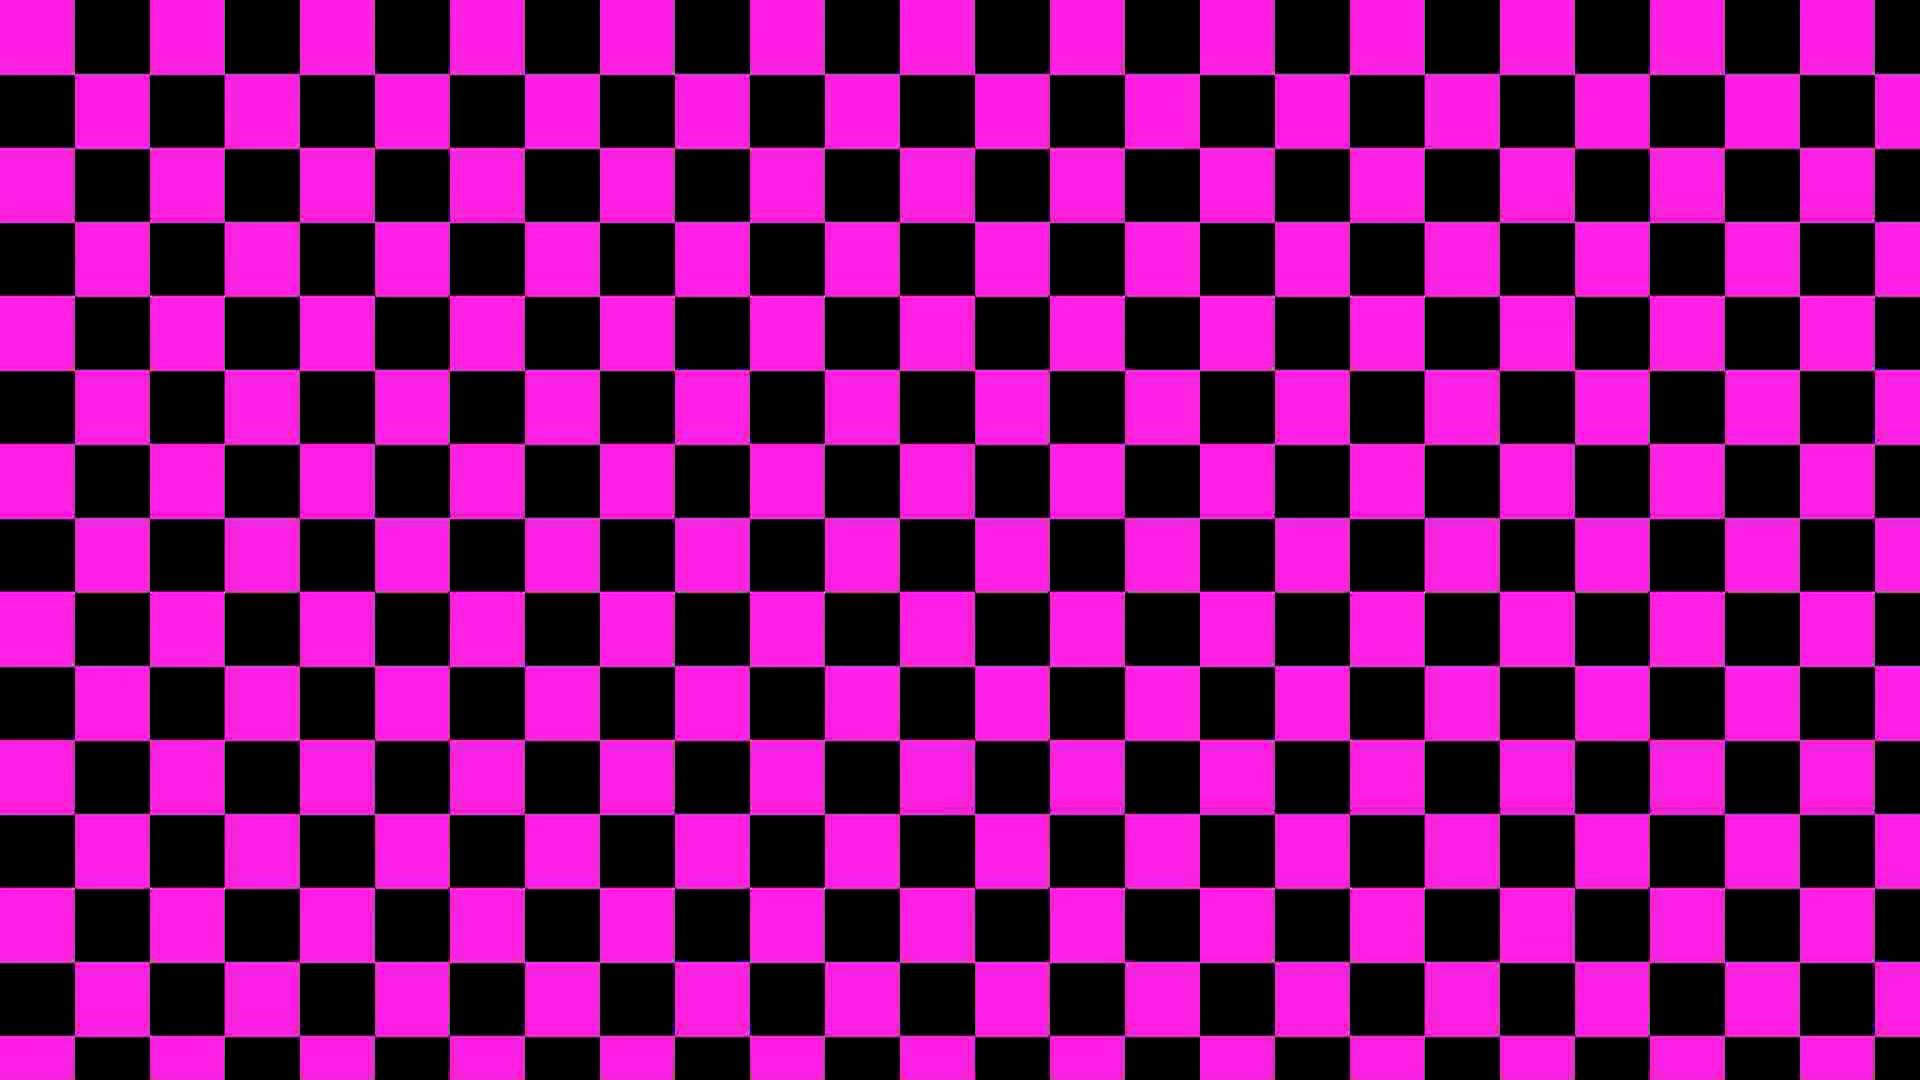 1920x1080 Pink Checkered Wallpaper Incredible Black and Pink Checkered Background